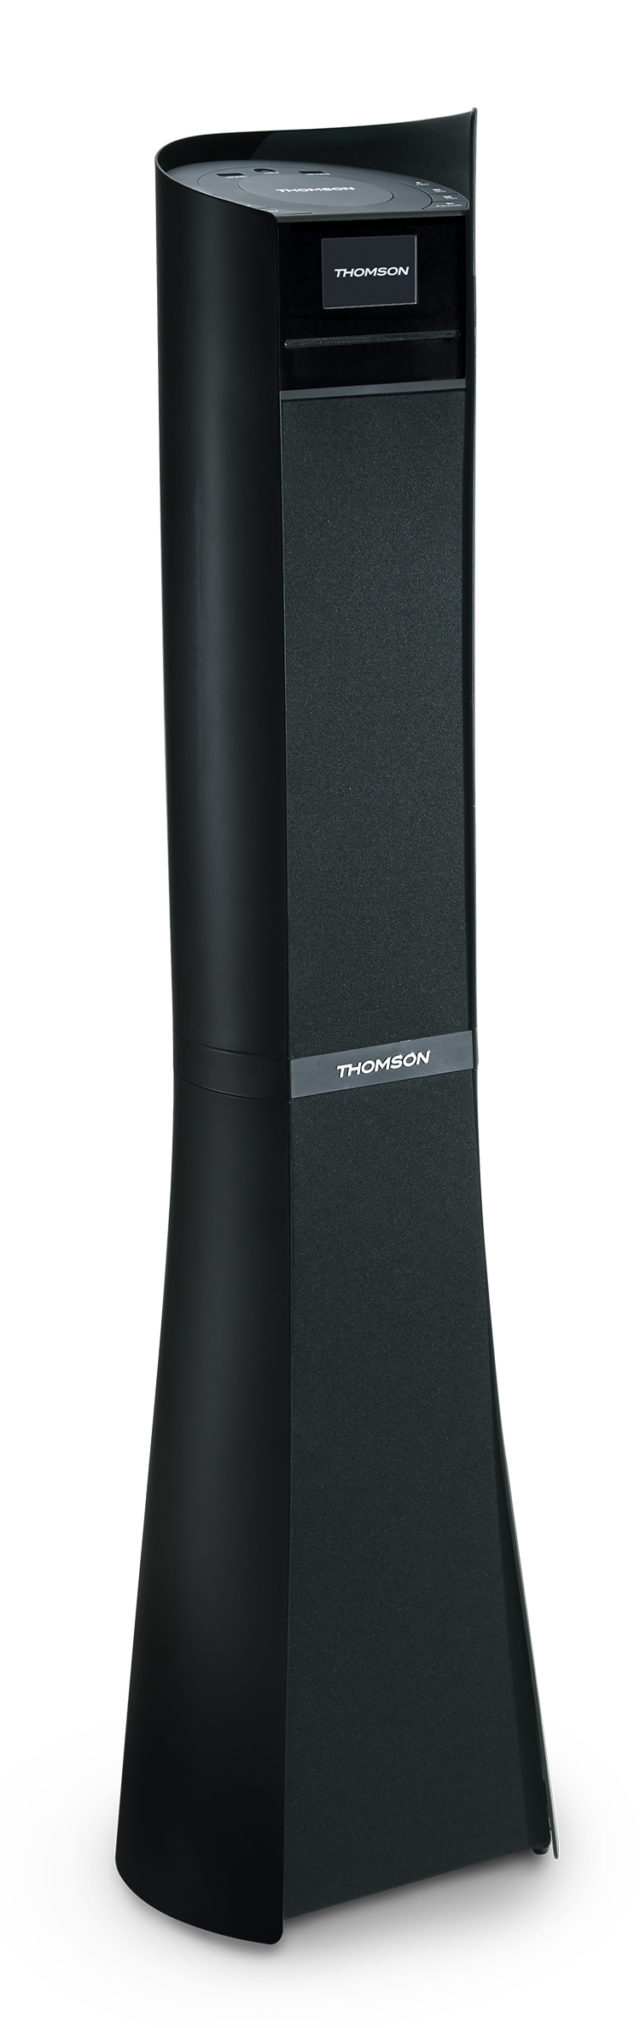 2.1CH Multimedia tower DS500BLACK THOMSON - Packshot